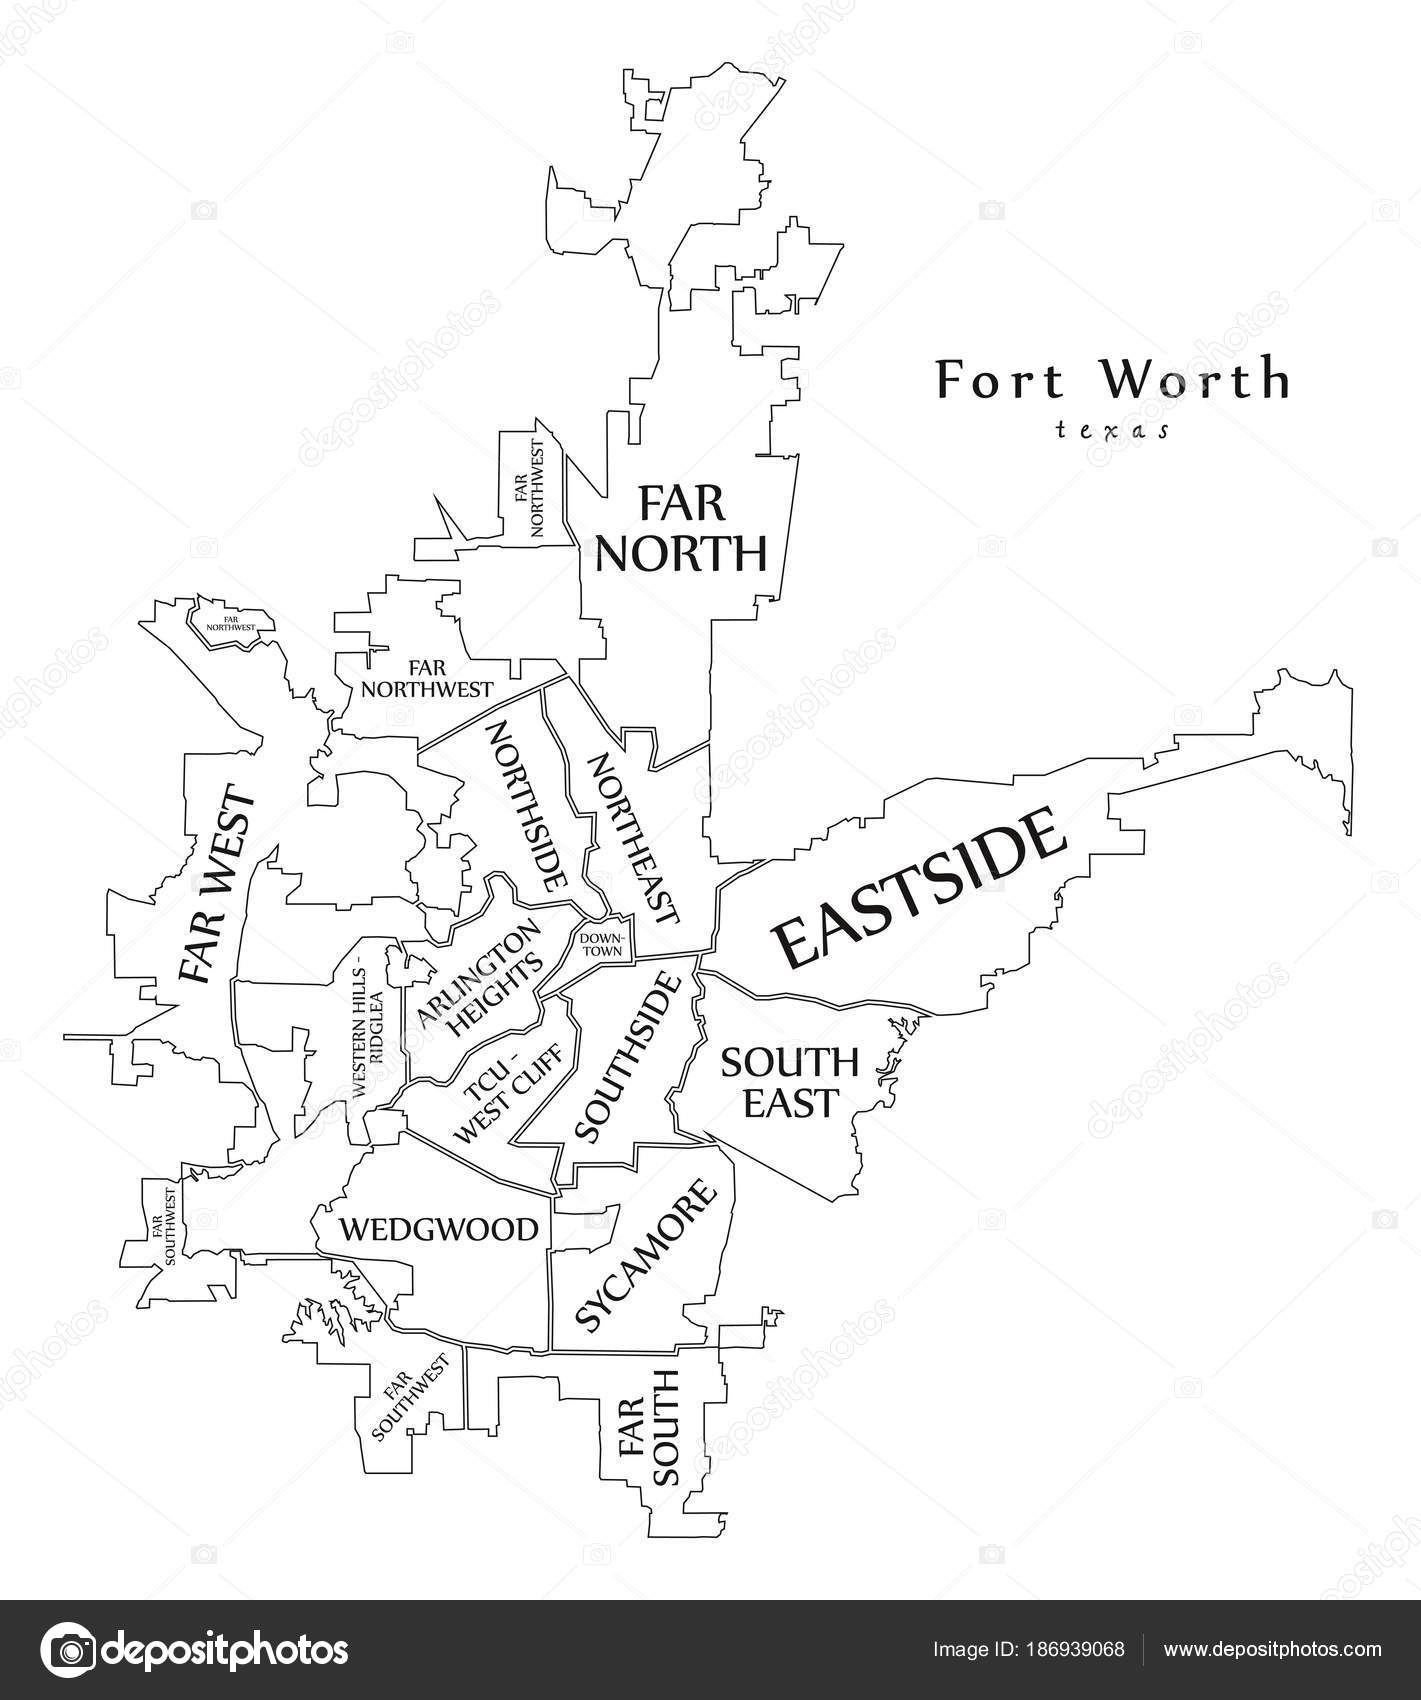 Modern City Map - Fort Worth Texas city of the USA neighborhoods ...